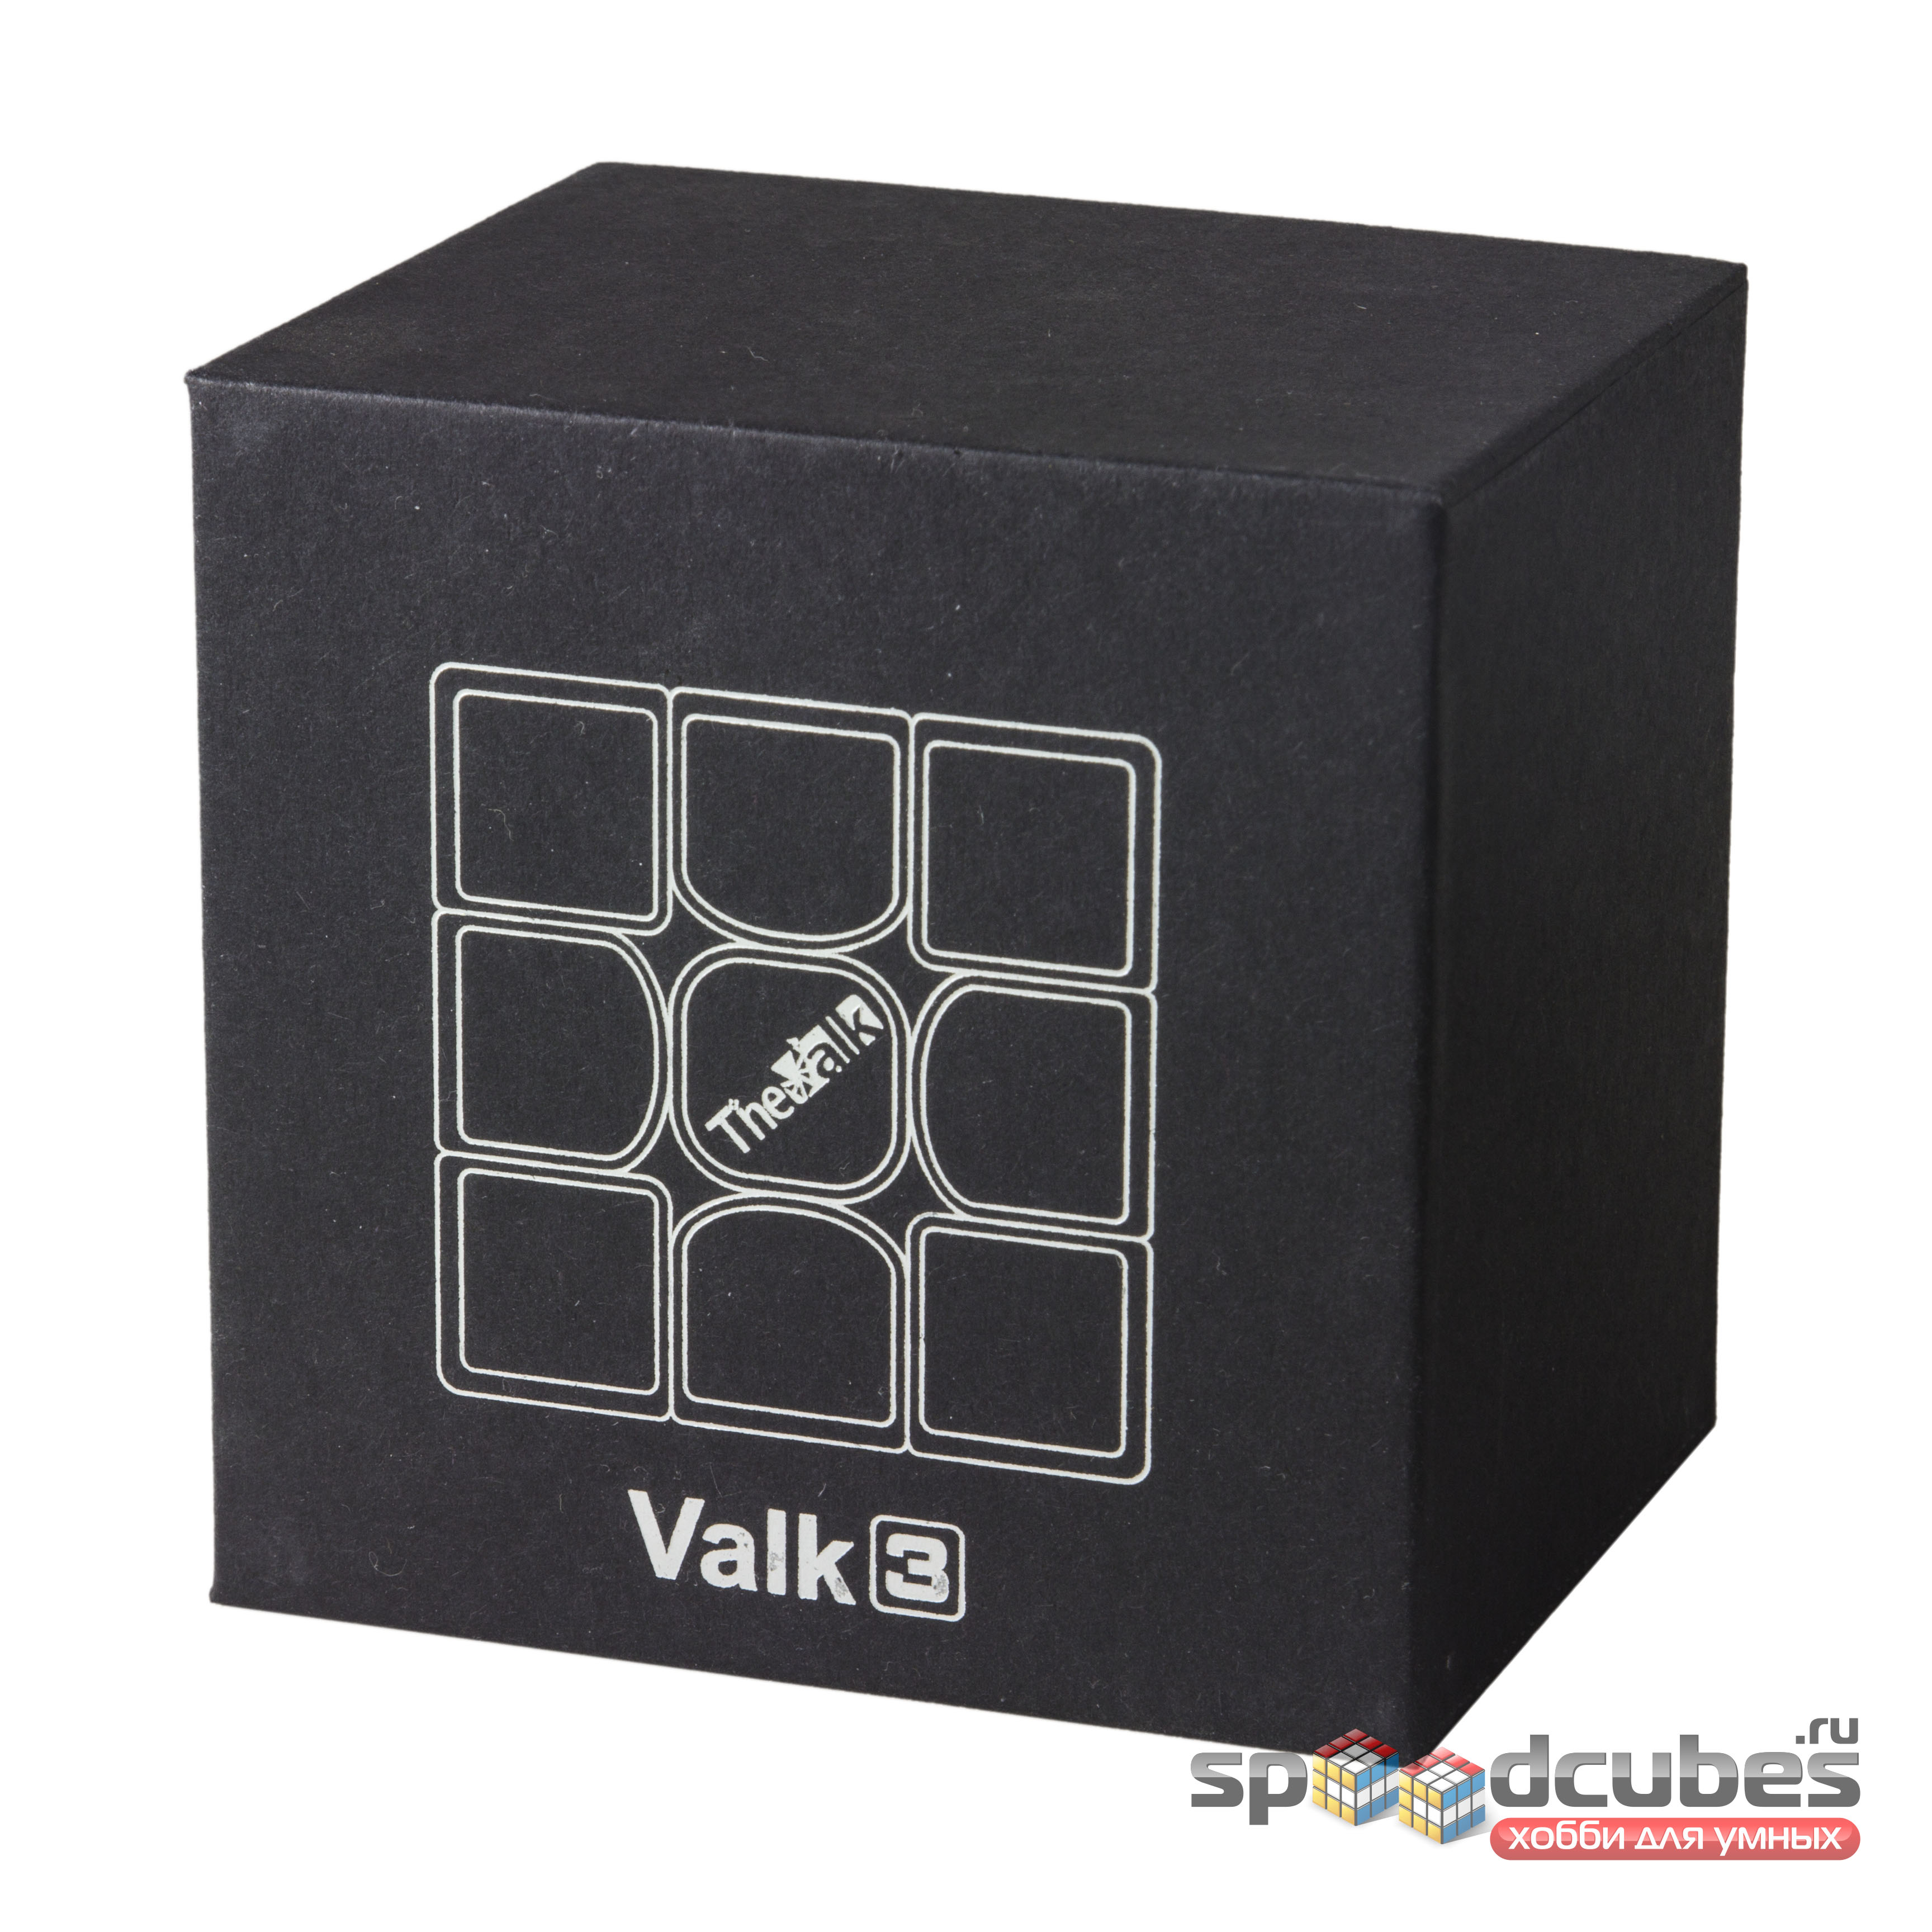 Qiyi Mofangge The Valk 3 Black 1